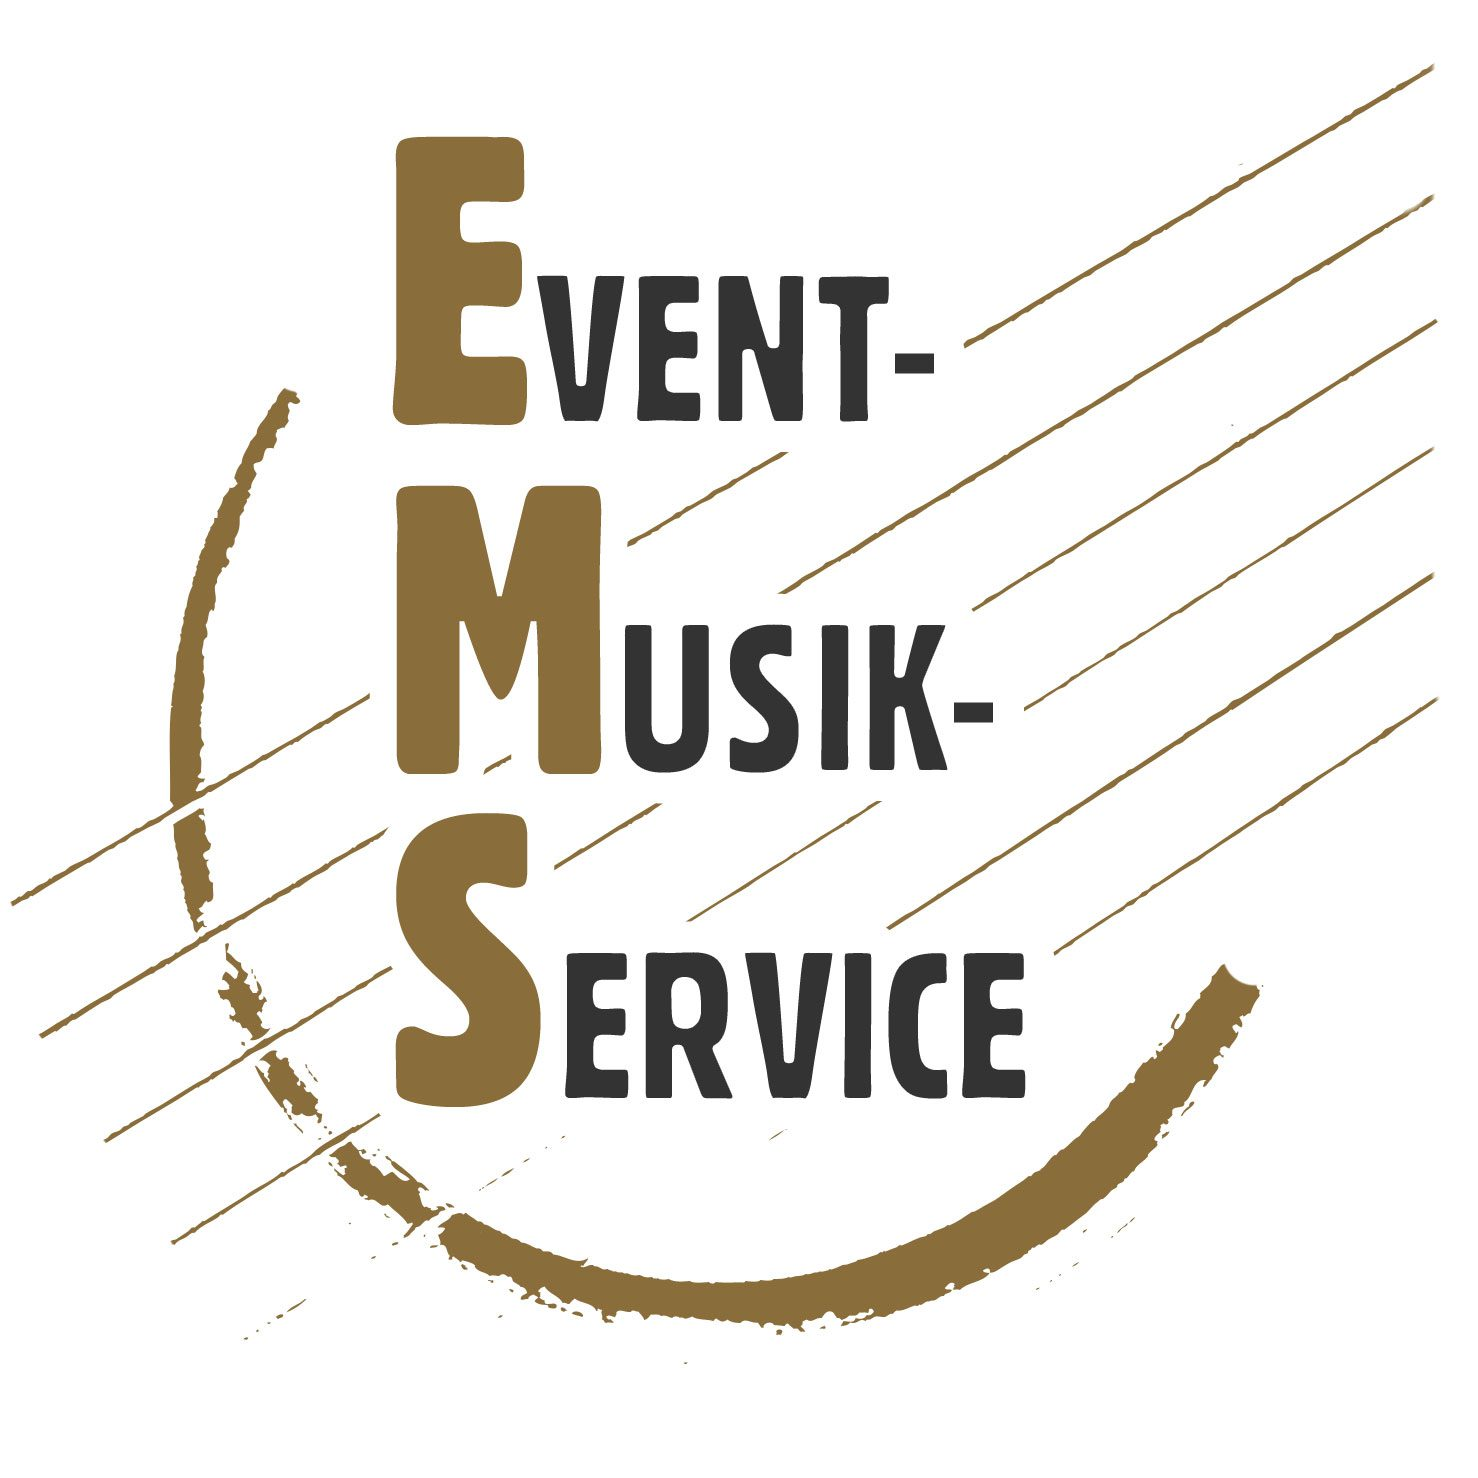 Event-Musik-Service